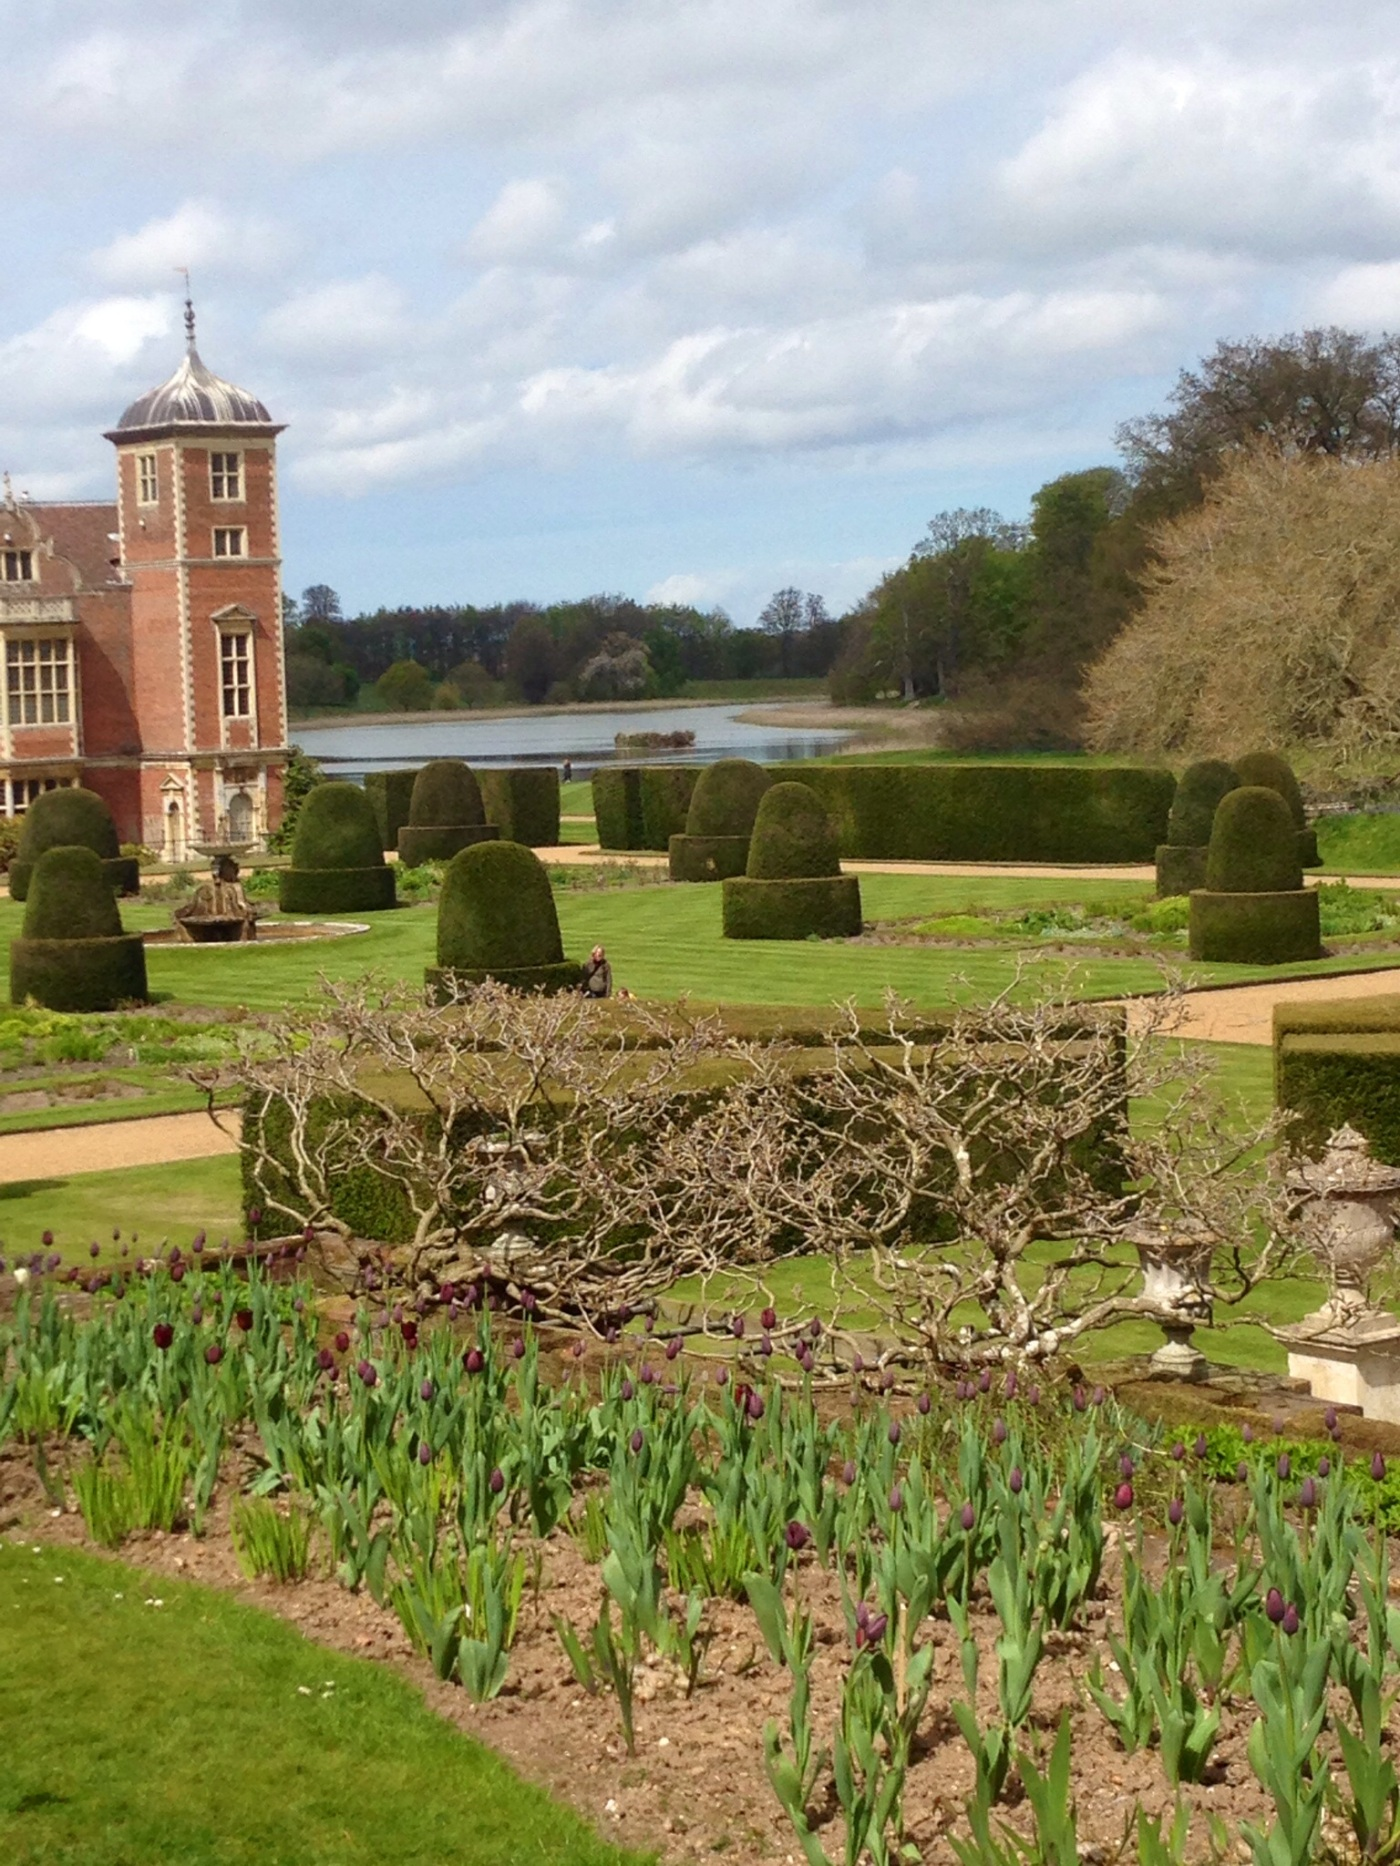 Topiary garden at Blickling Hall, Norfolk